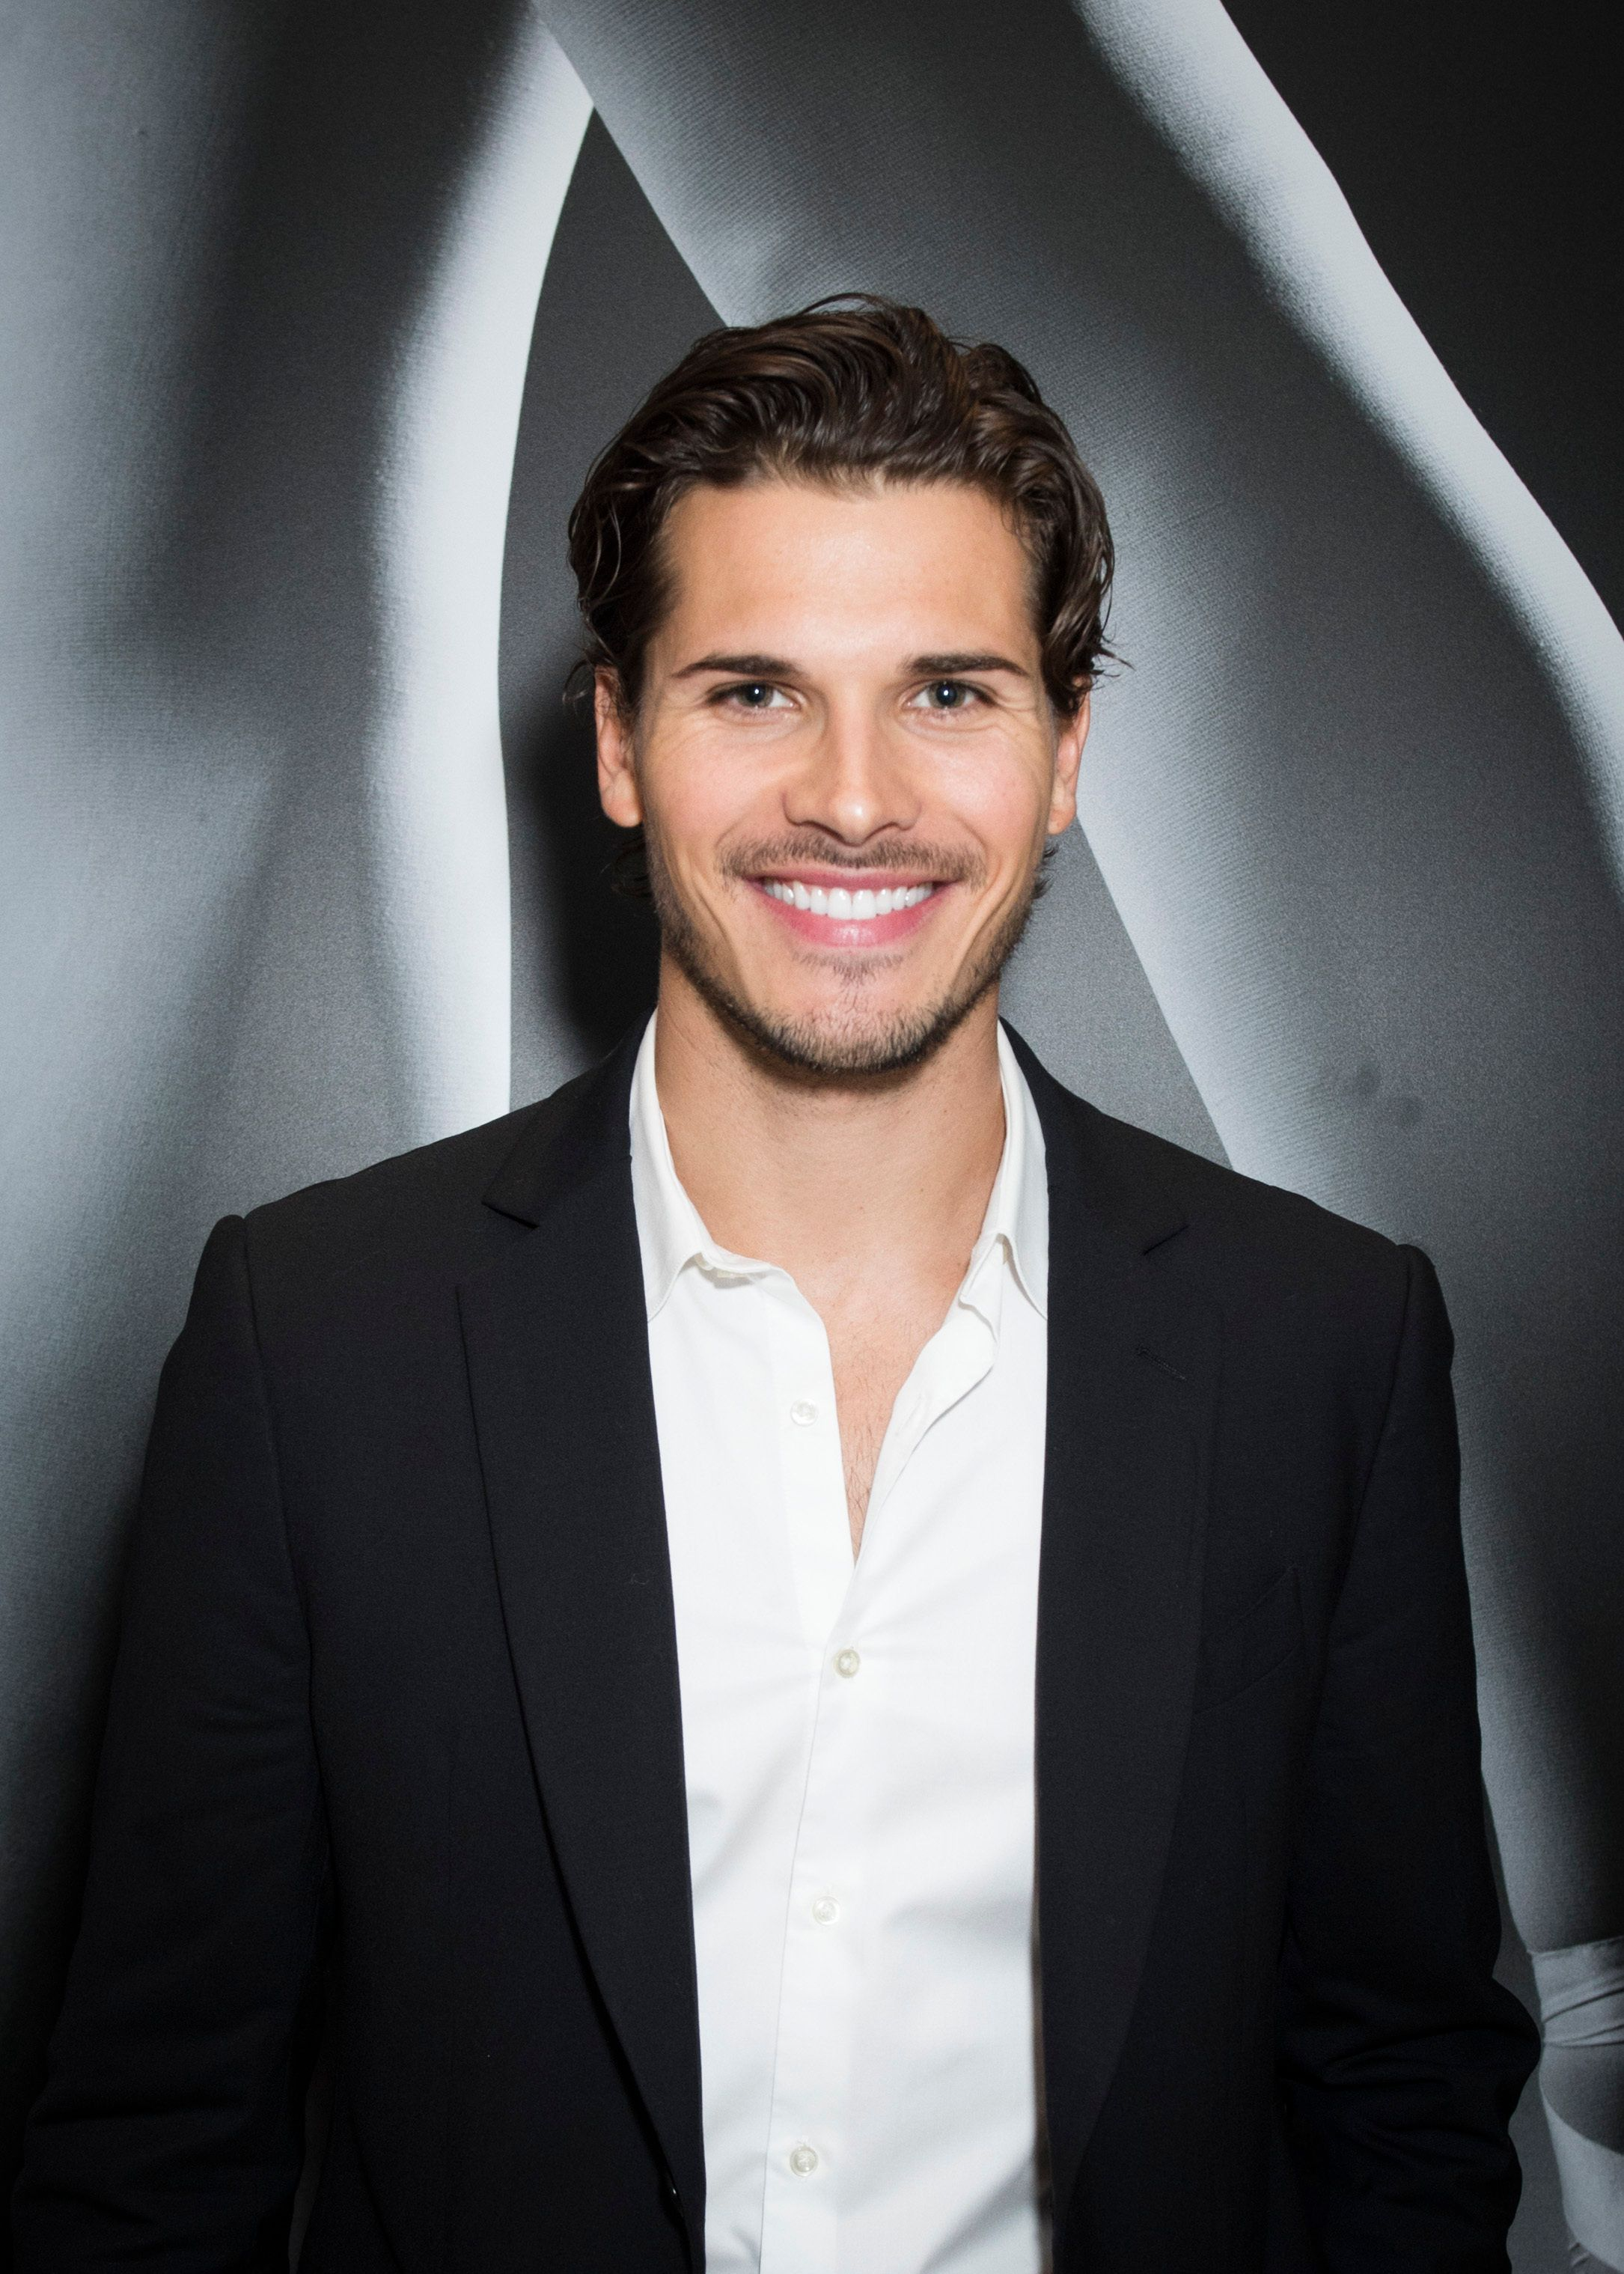 Ex-'Strictly' Pro Gleb Savchenko Slams The Show, Calling For The BBC To 'Triple' Dancers'